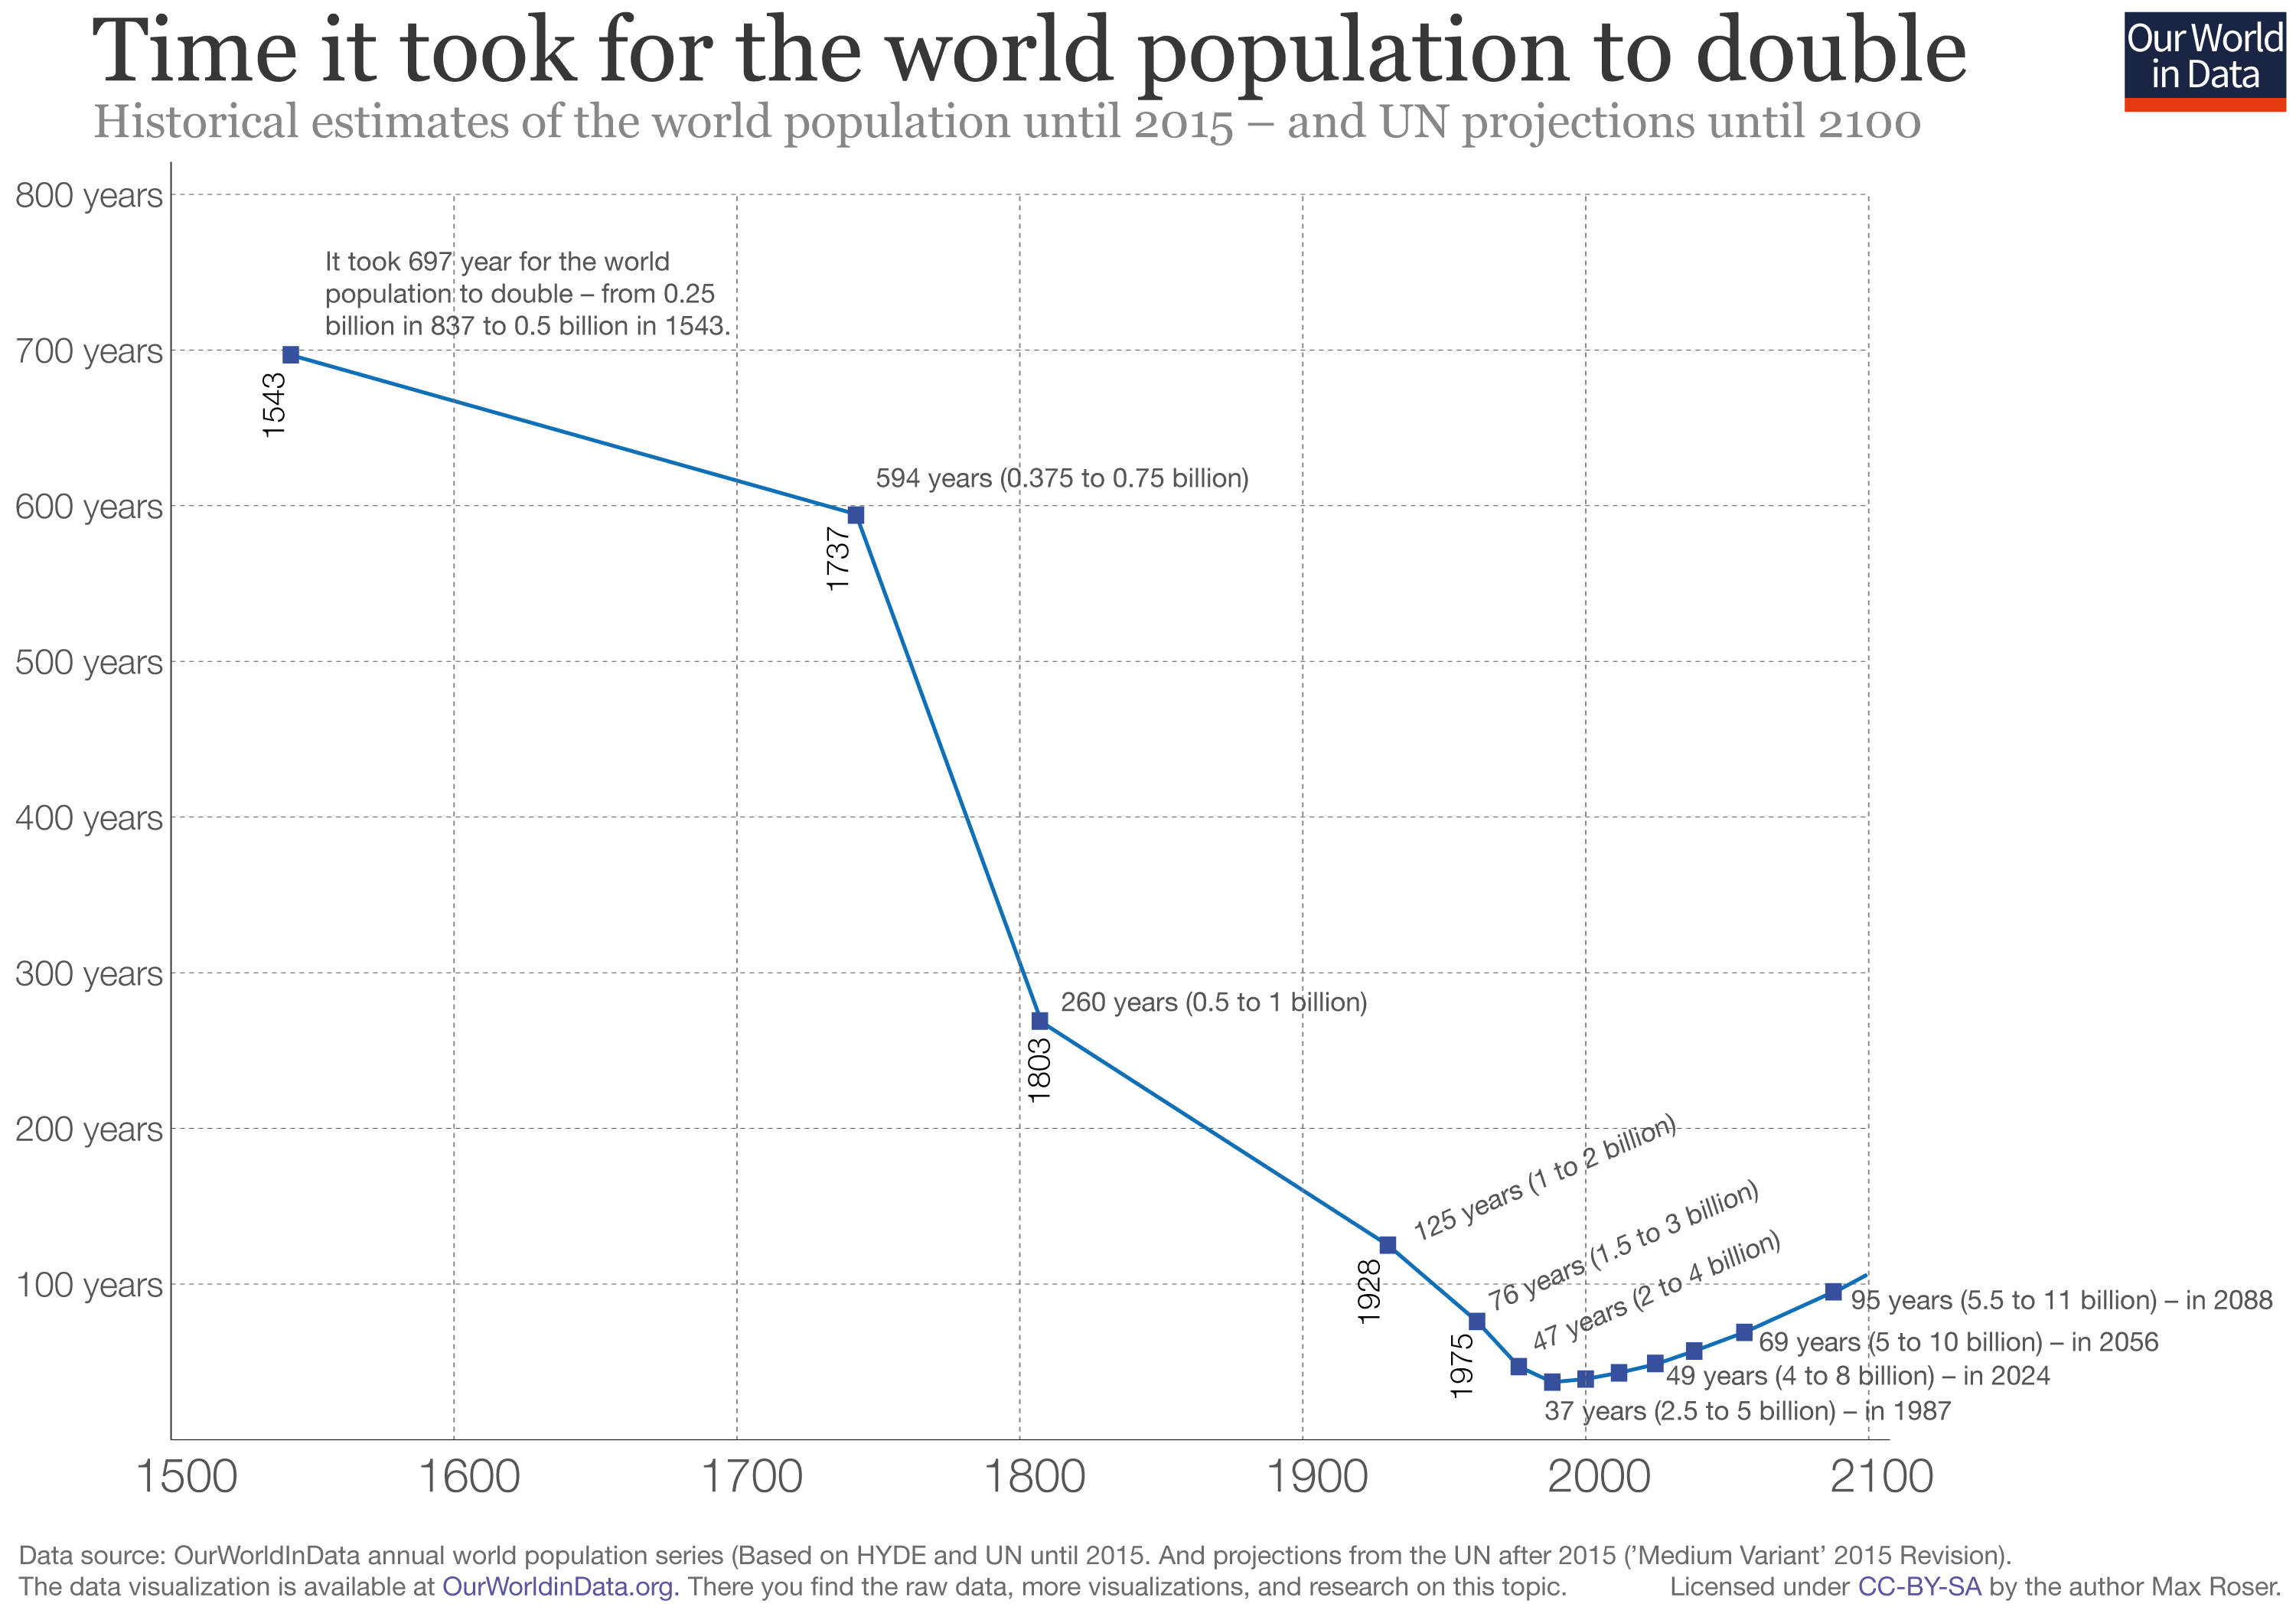 world population growth our world in data Rational and Irrational Numbers Venn Diagram time it took for the world population to double